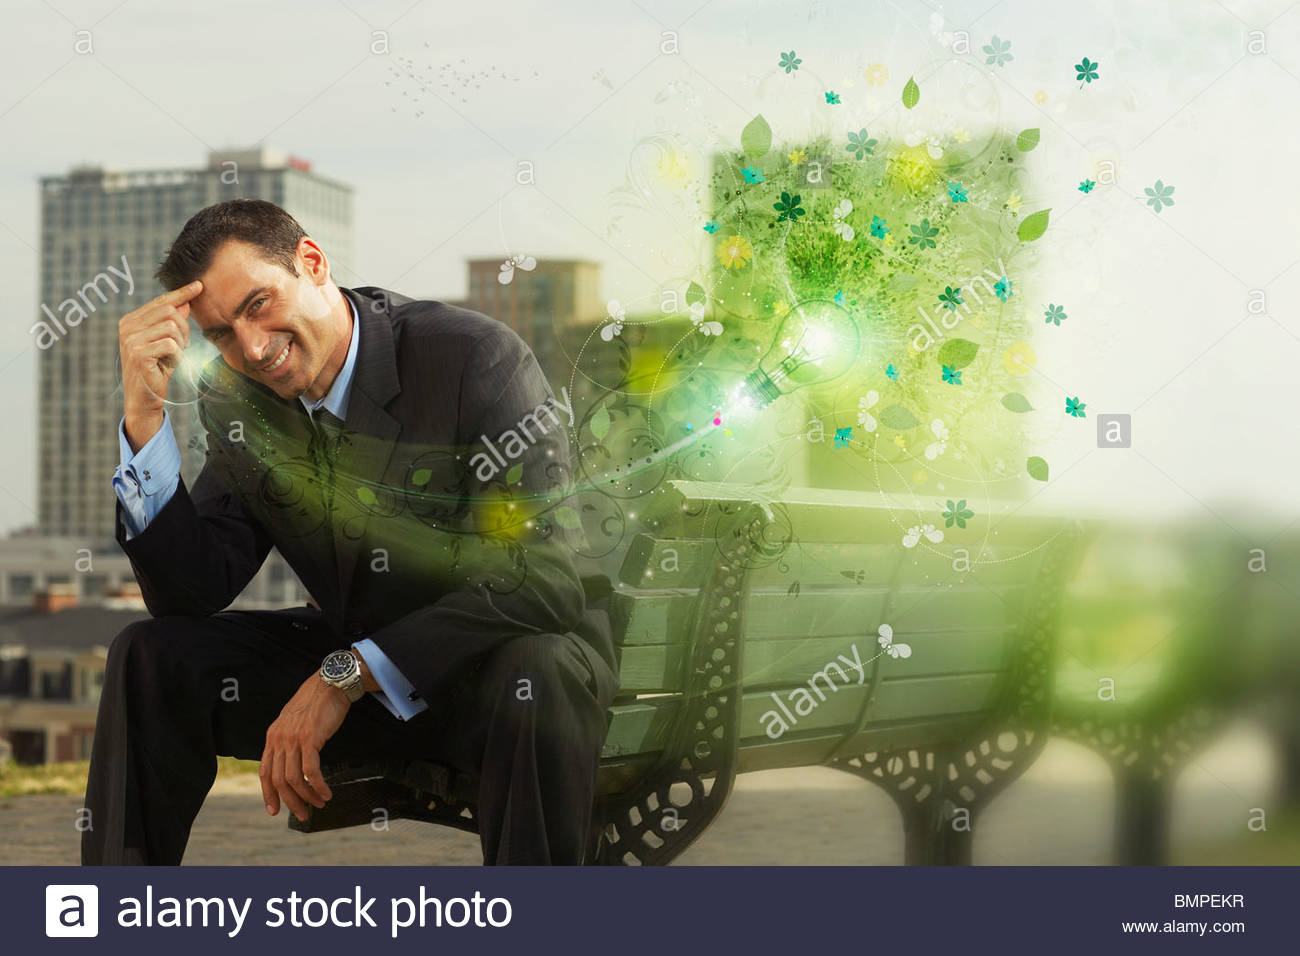 Green graphics emerging from businessman on bench - Stock Image